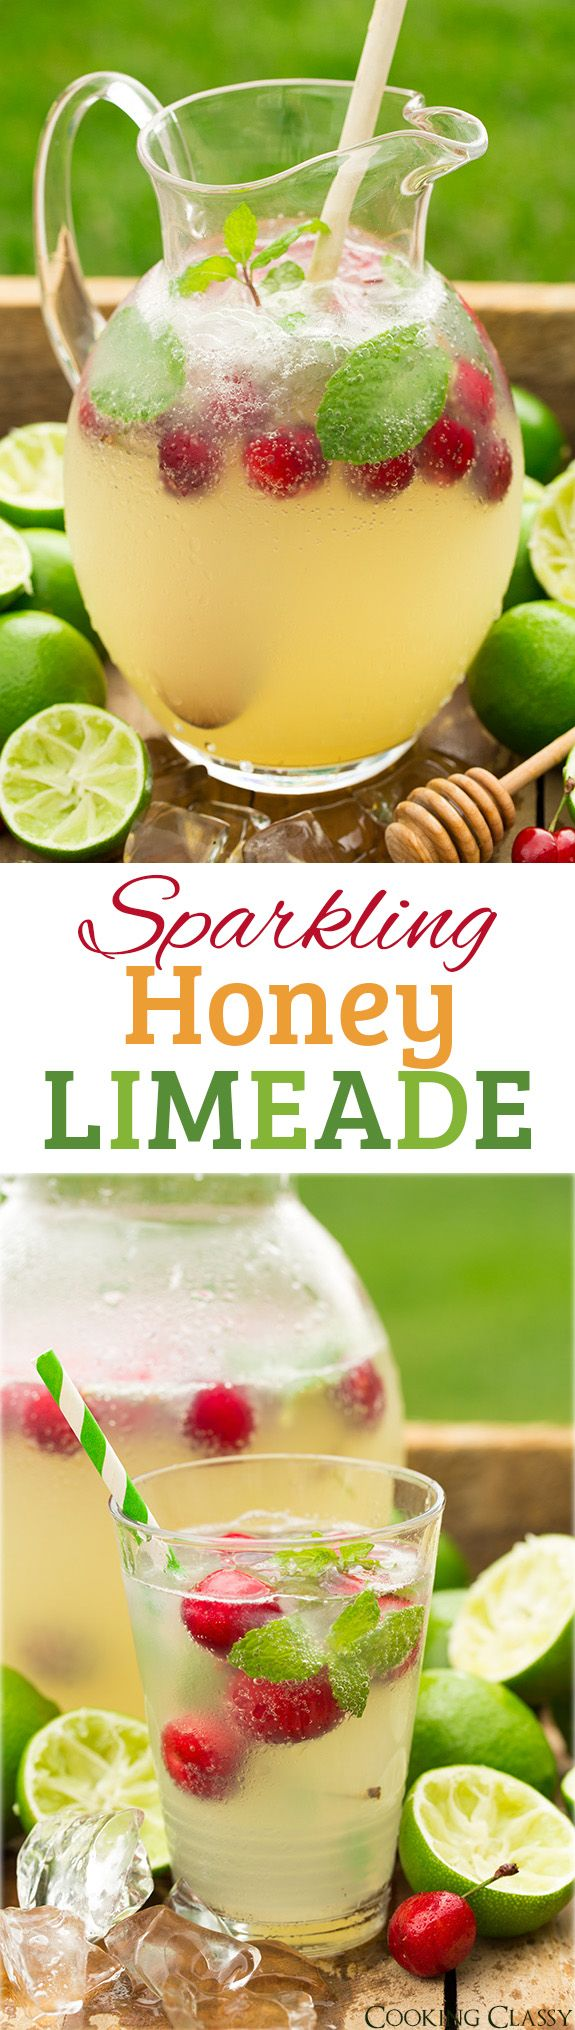 Sparkling Limeade with Honey Recipe - Cooking Classy